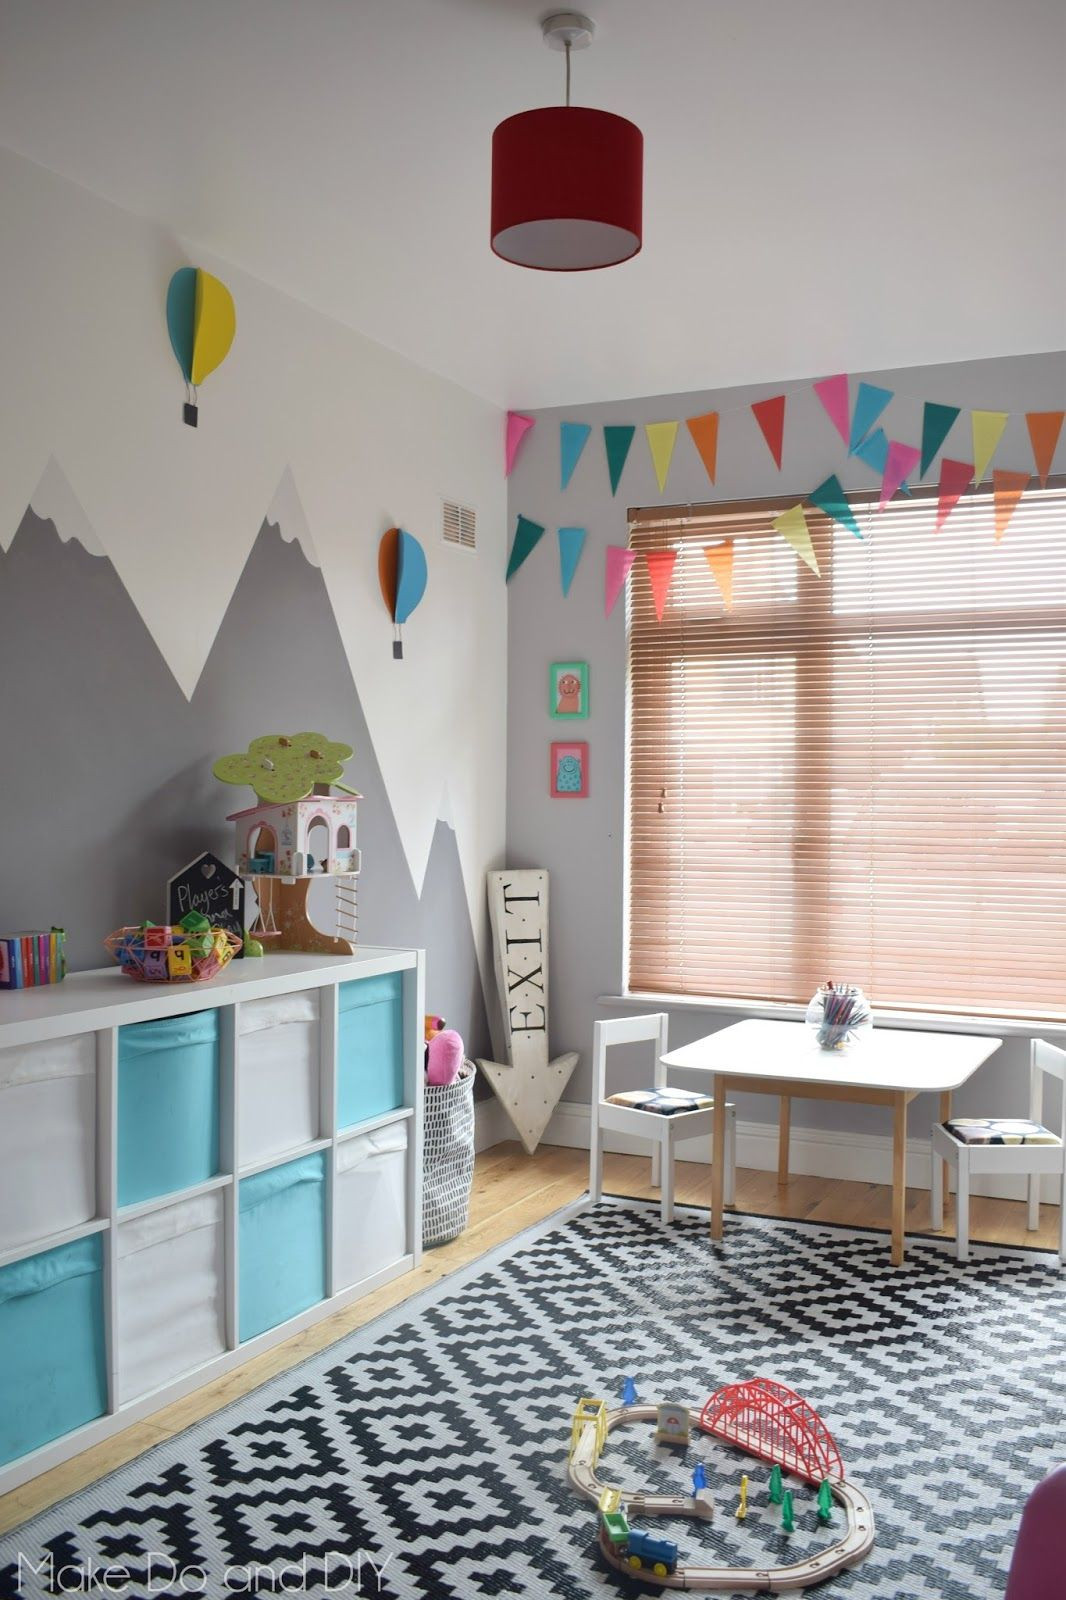 Best ideas about DIY Kids Playrooms . Save or Pin adventure playroom makeover diy Now.